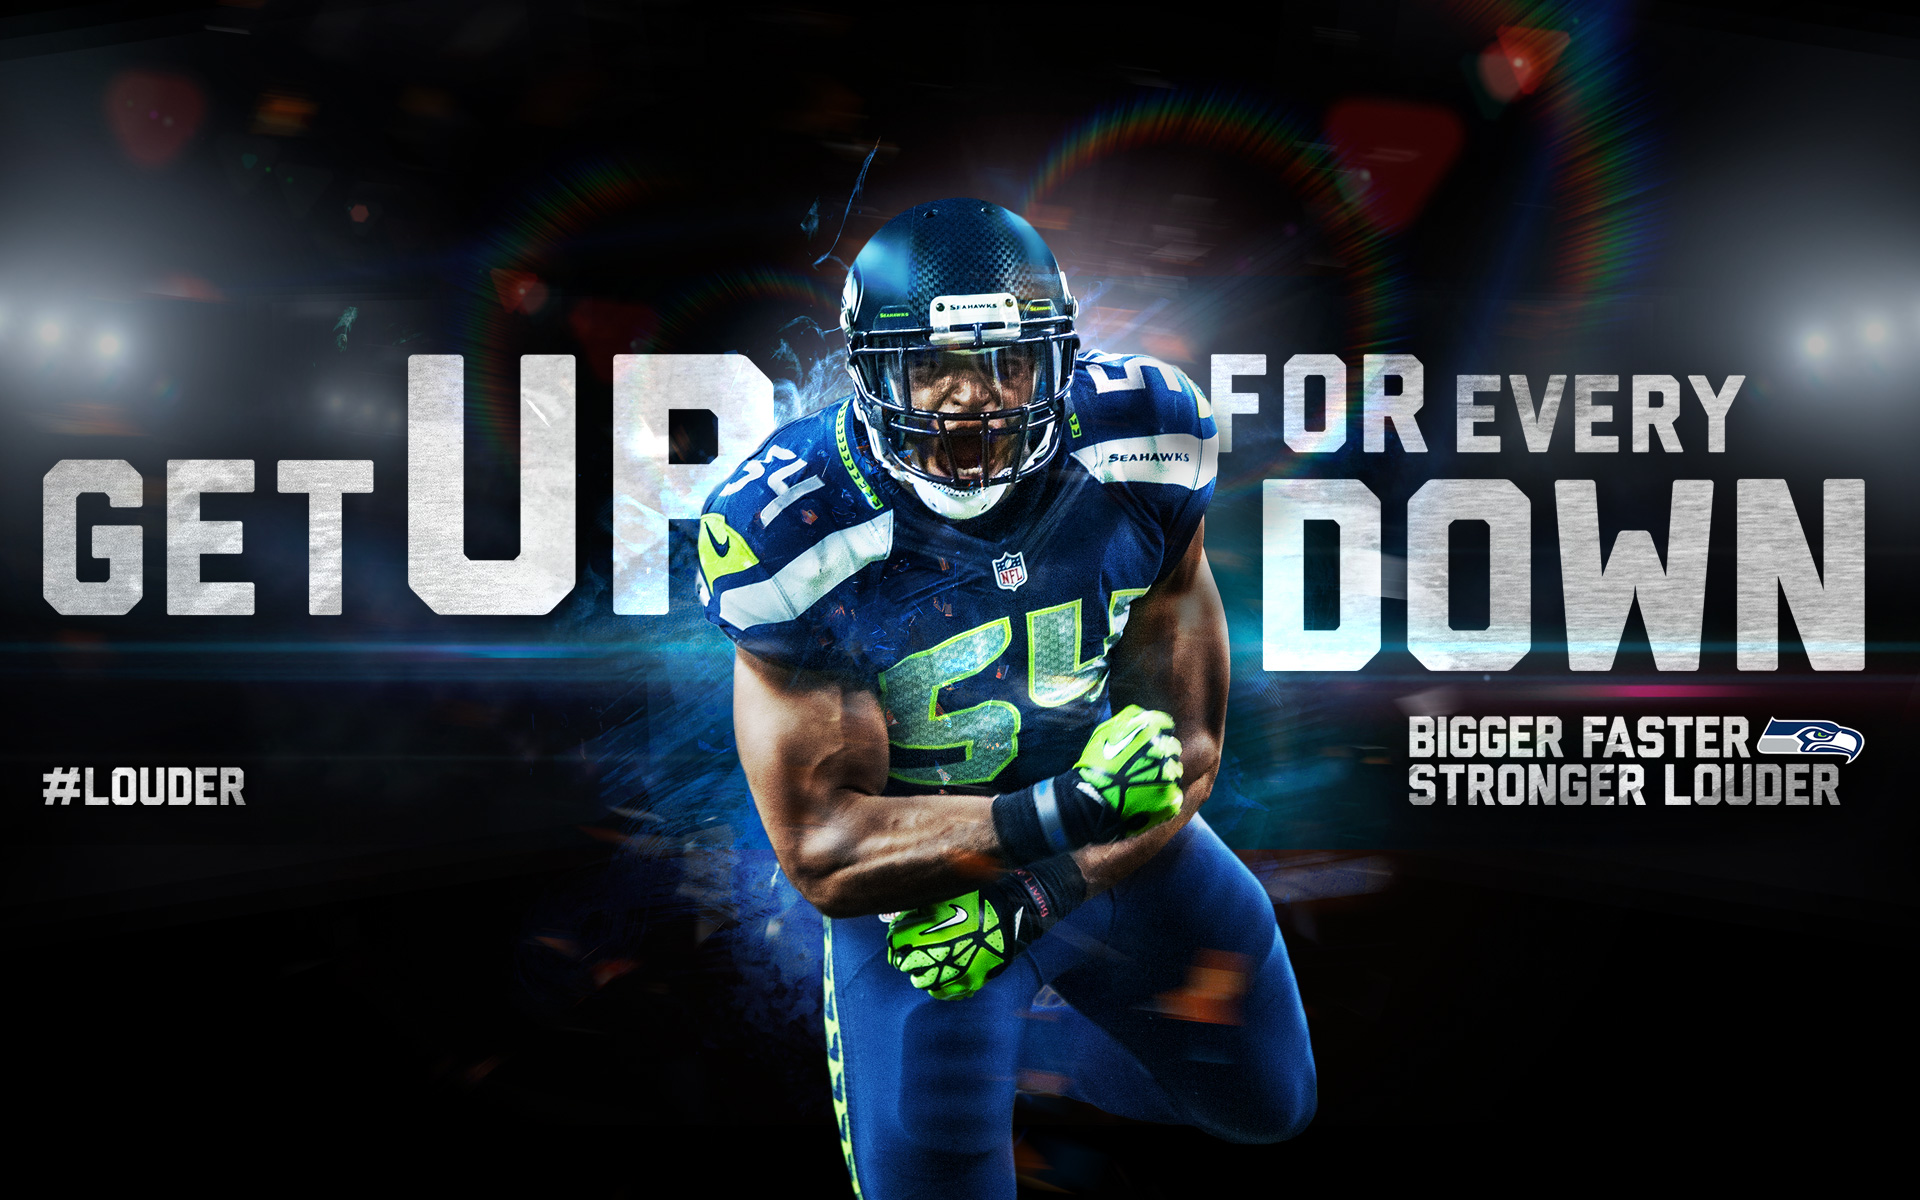 Download nfl football wallpaper gallery nfl football wallpaper voltagebd Image collections